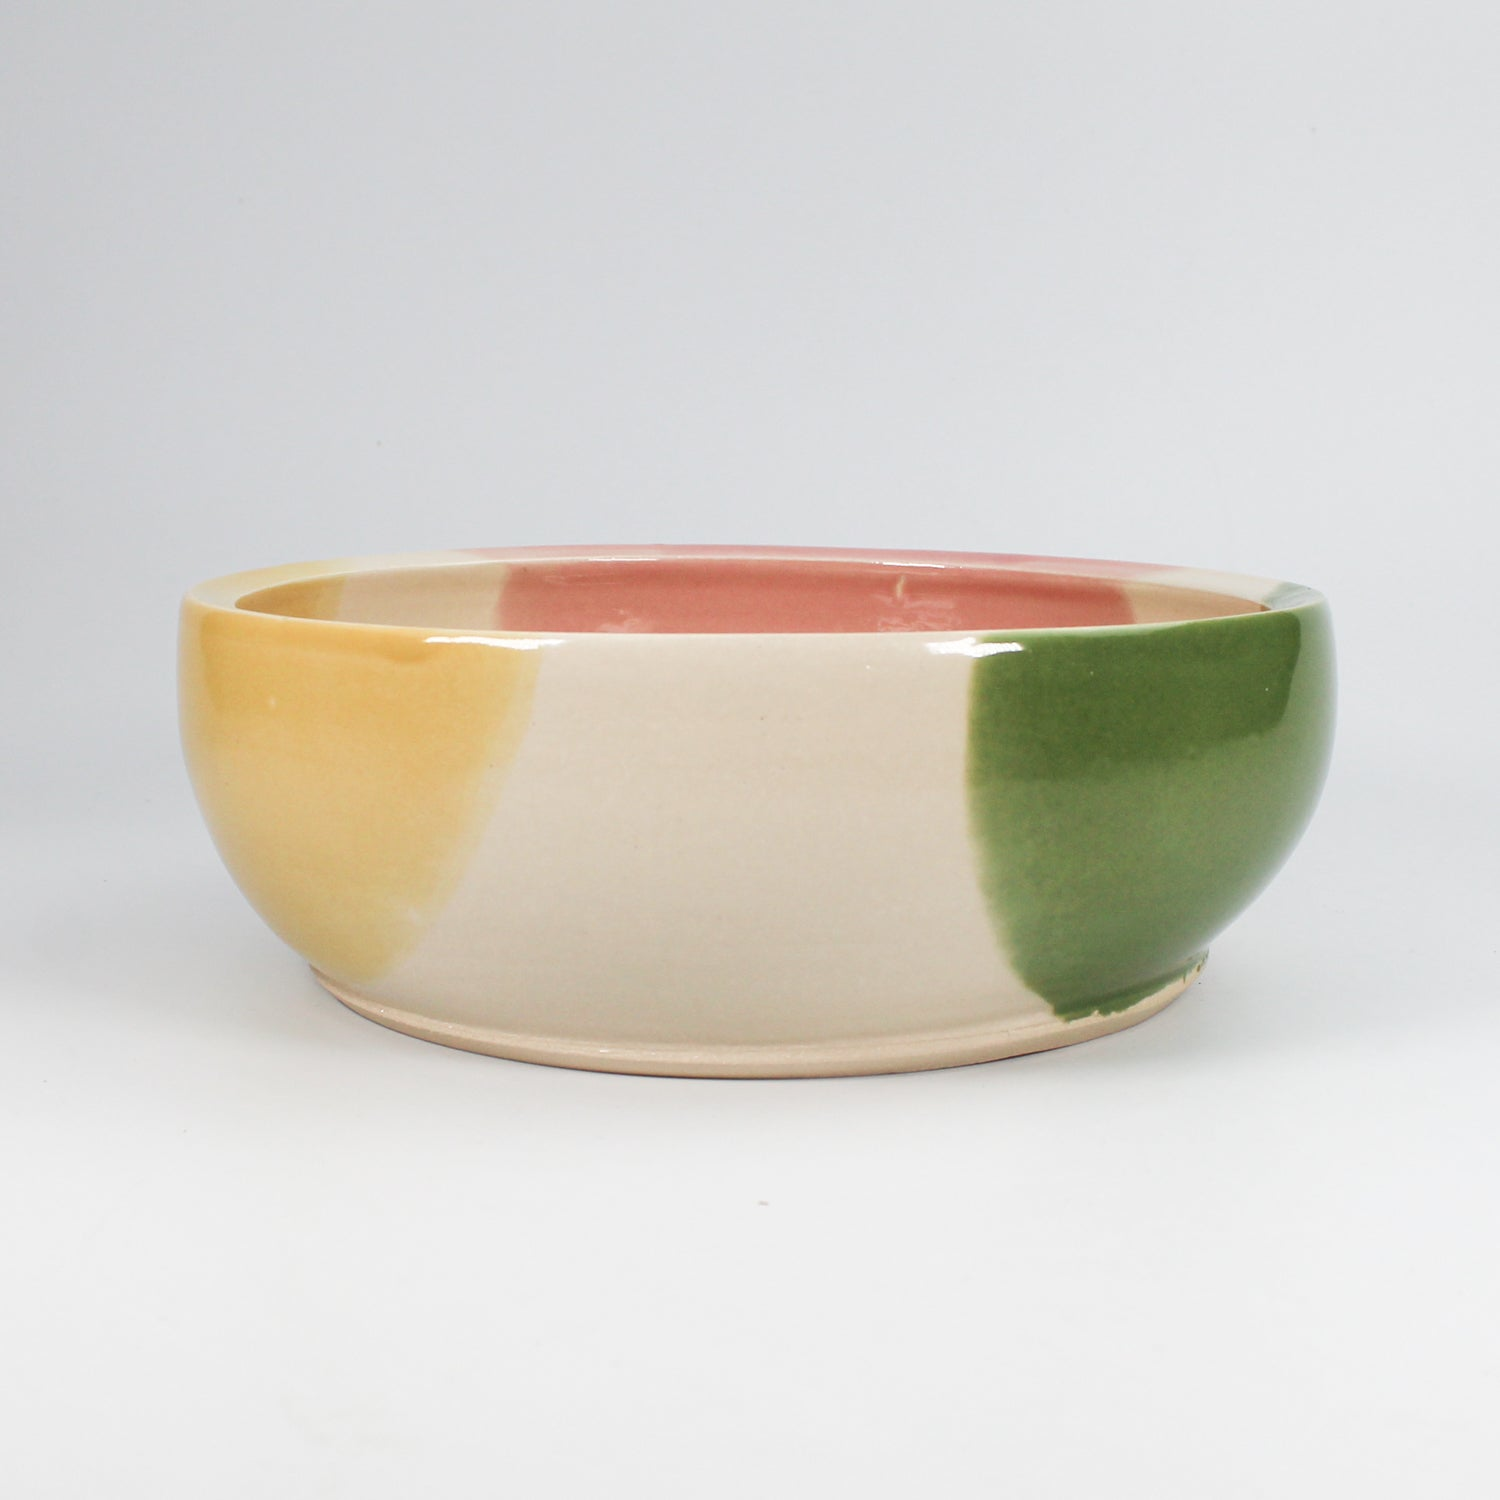 Side view of multi-coloured ceramic dog bowl with high gloss glaze